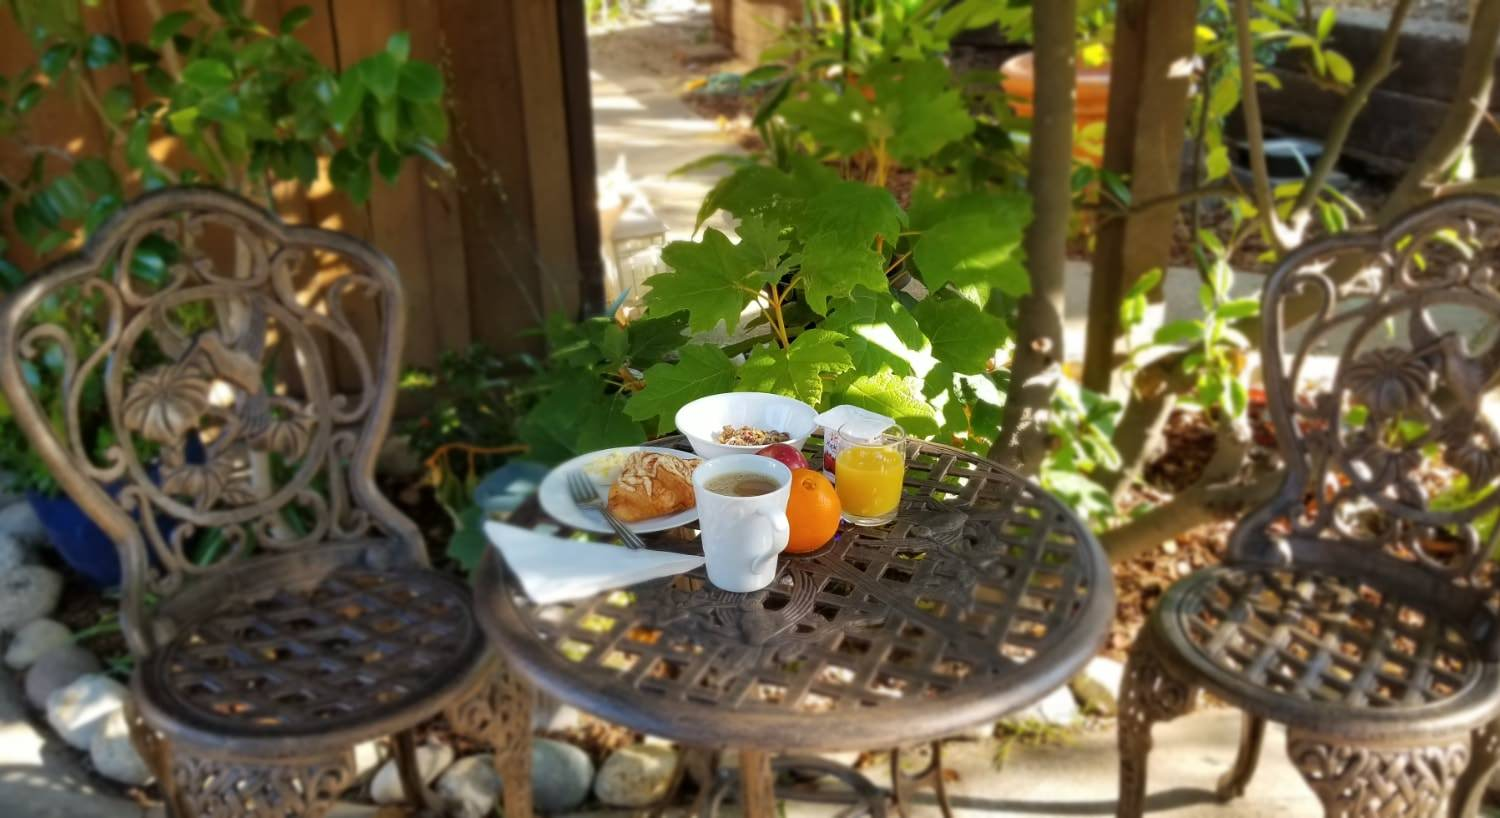 Small breakfast with a pastry, yogurt and granola, orange, apple, apple juice, and coffee in white porcelain dishes sitting on rod iron table on patio